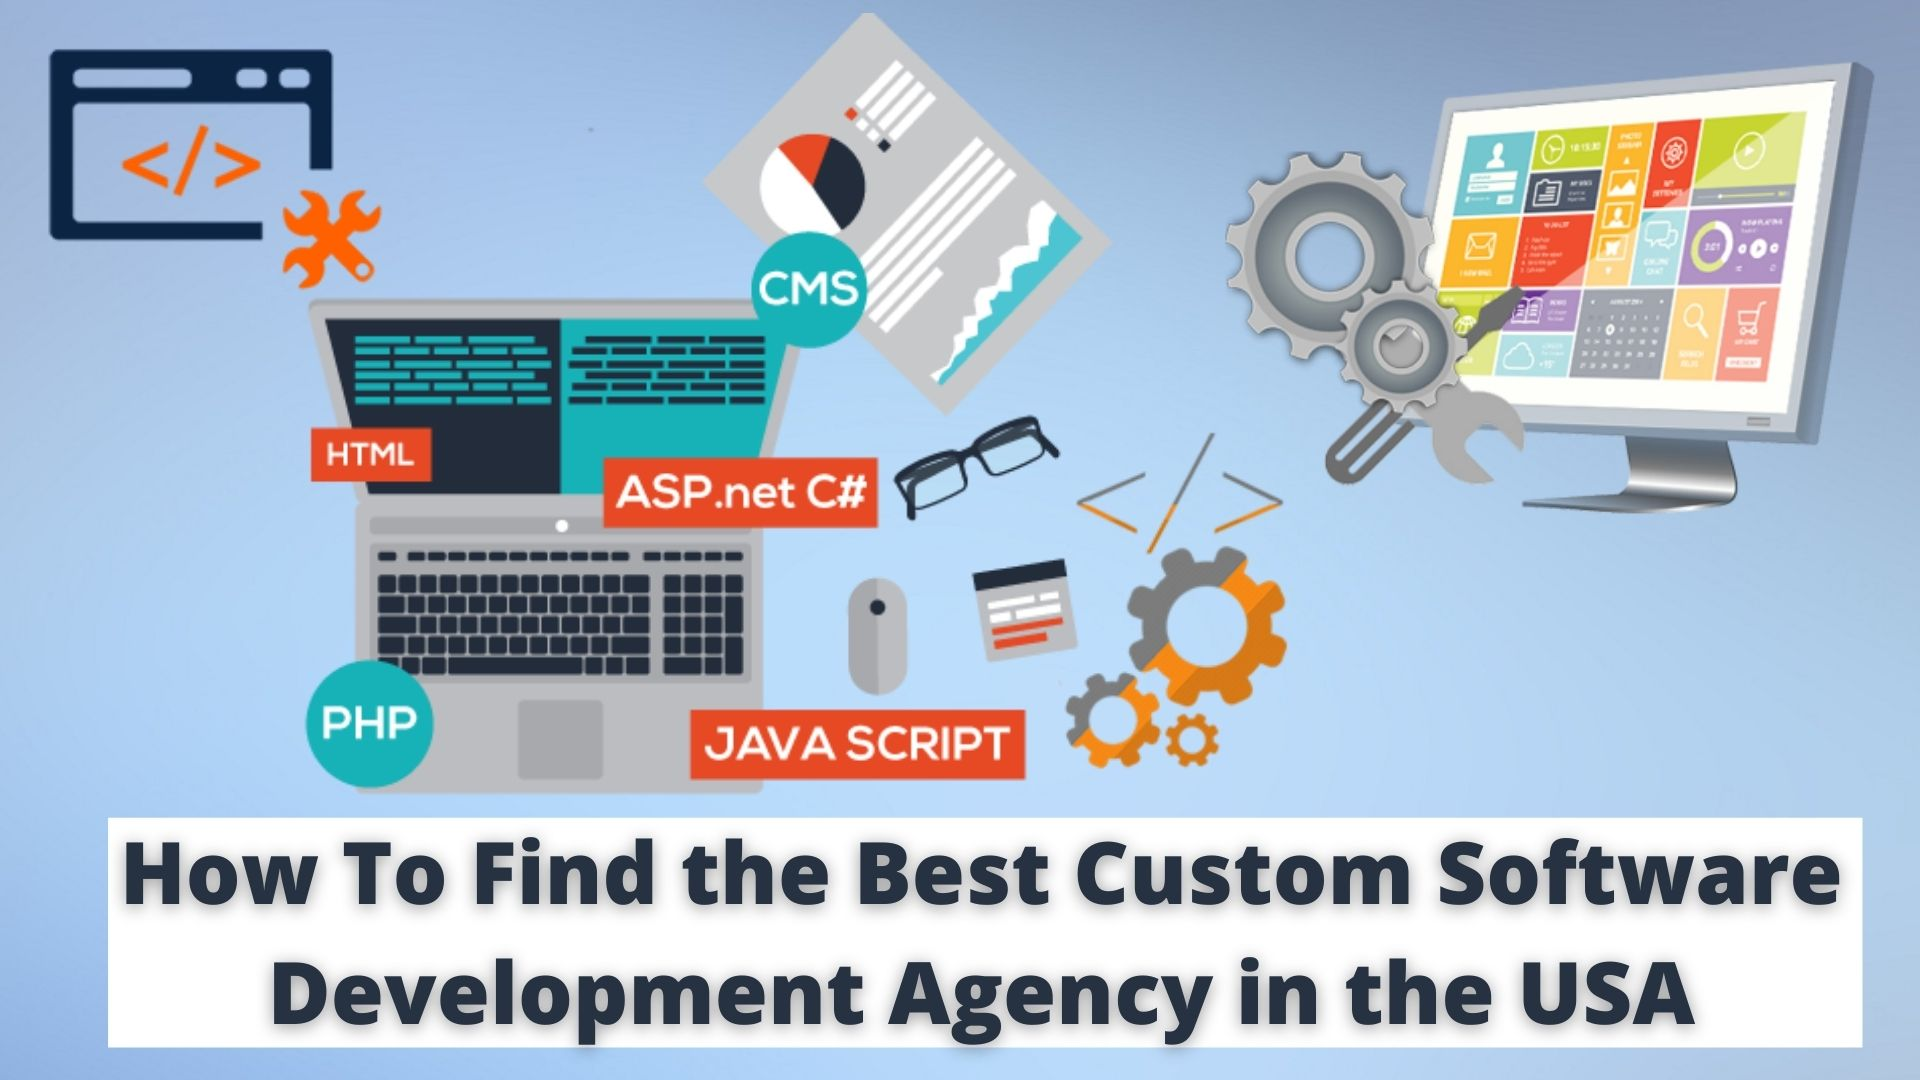 How To Find the Best Custom Software Development Agency in the USA